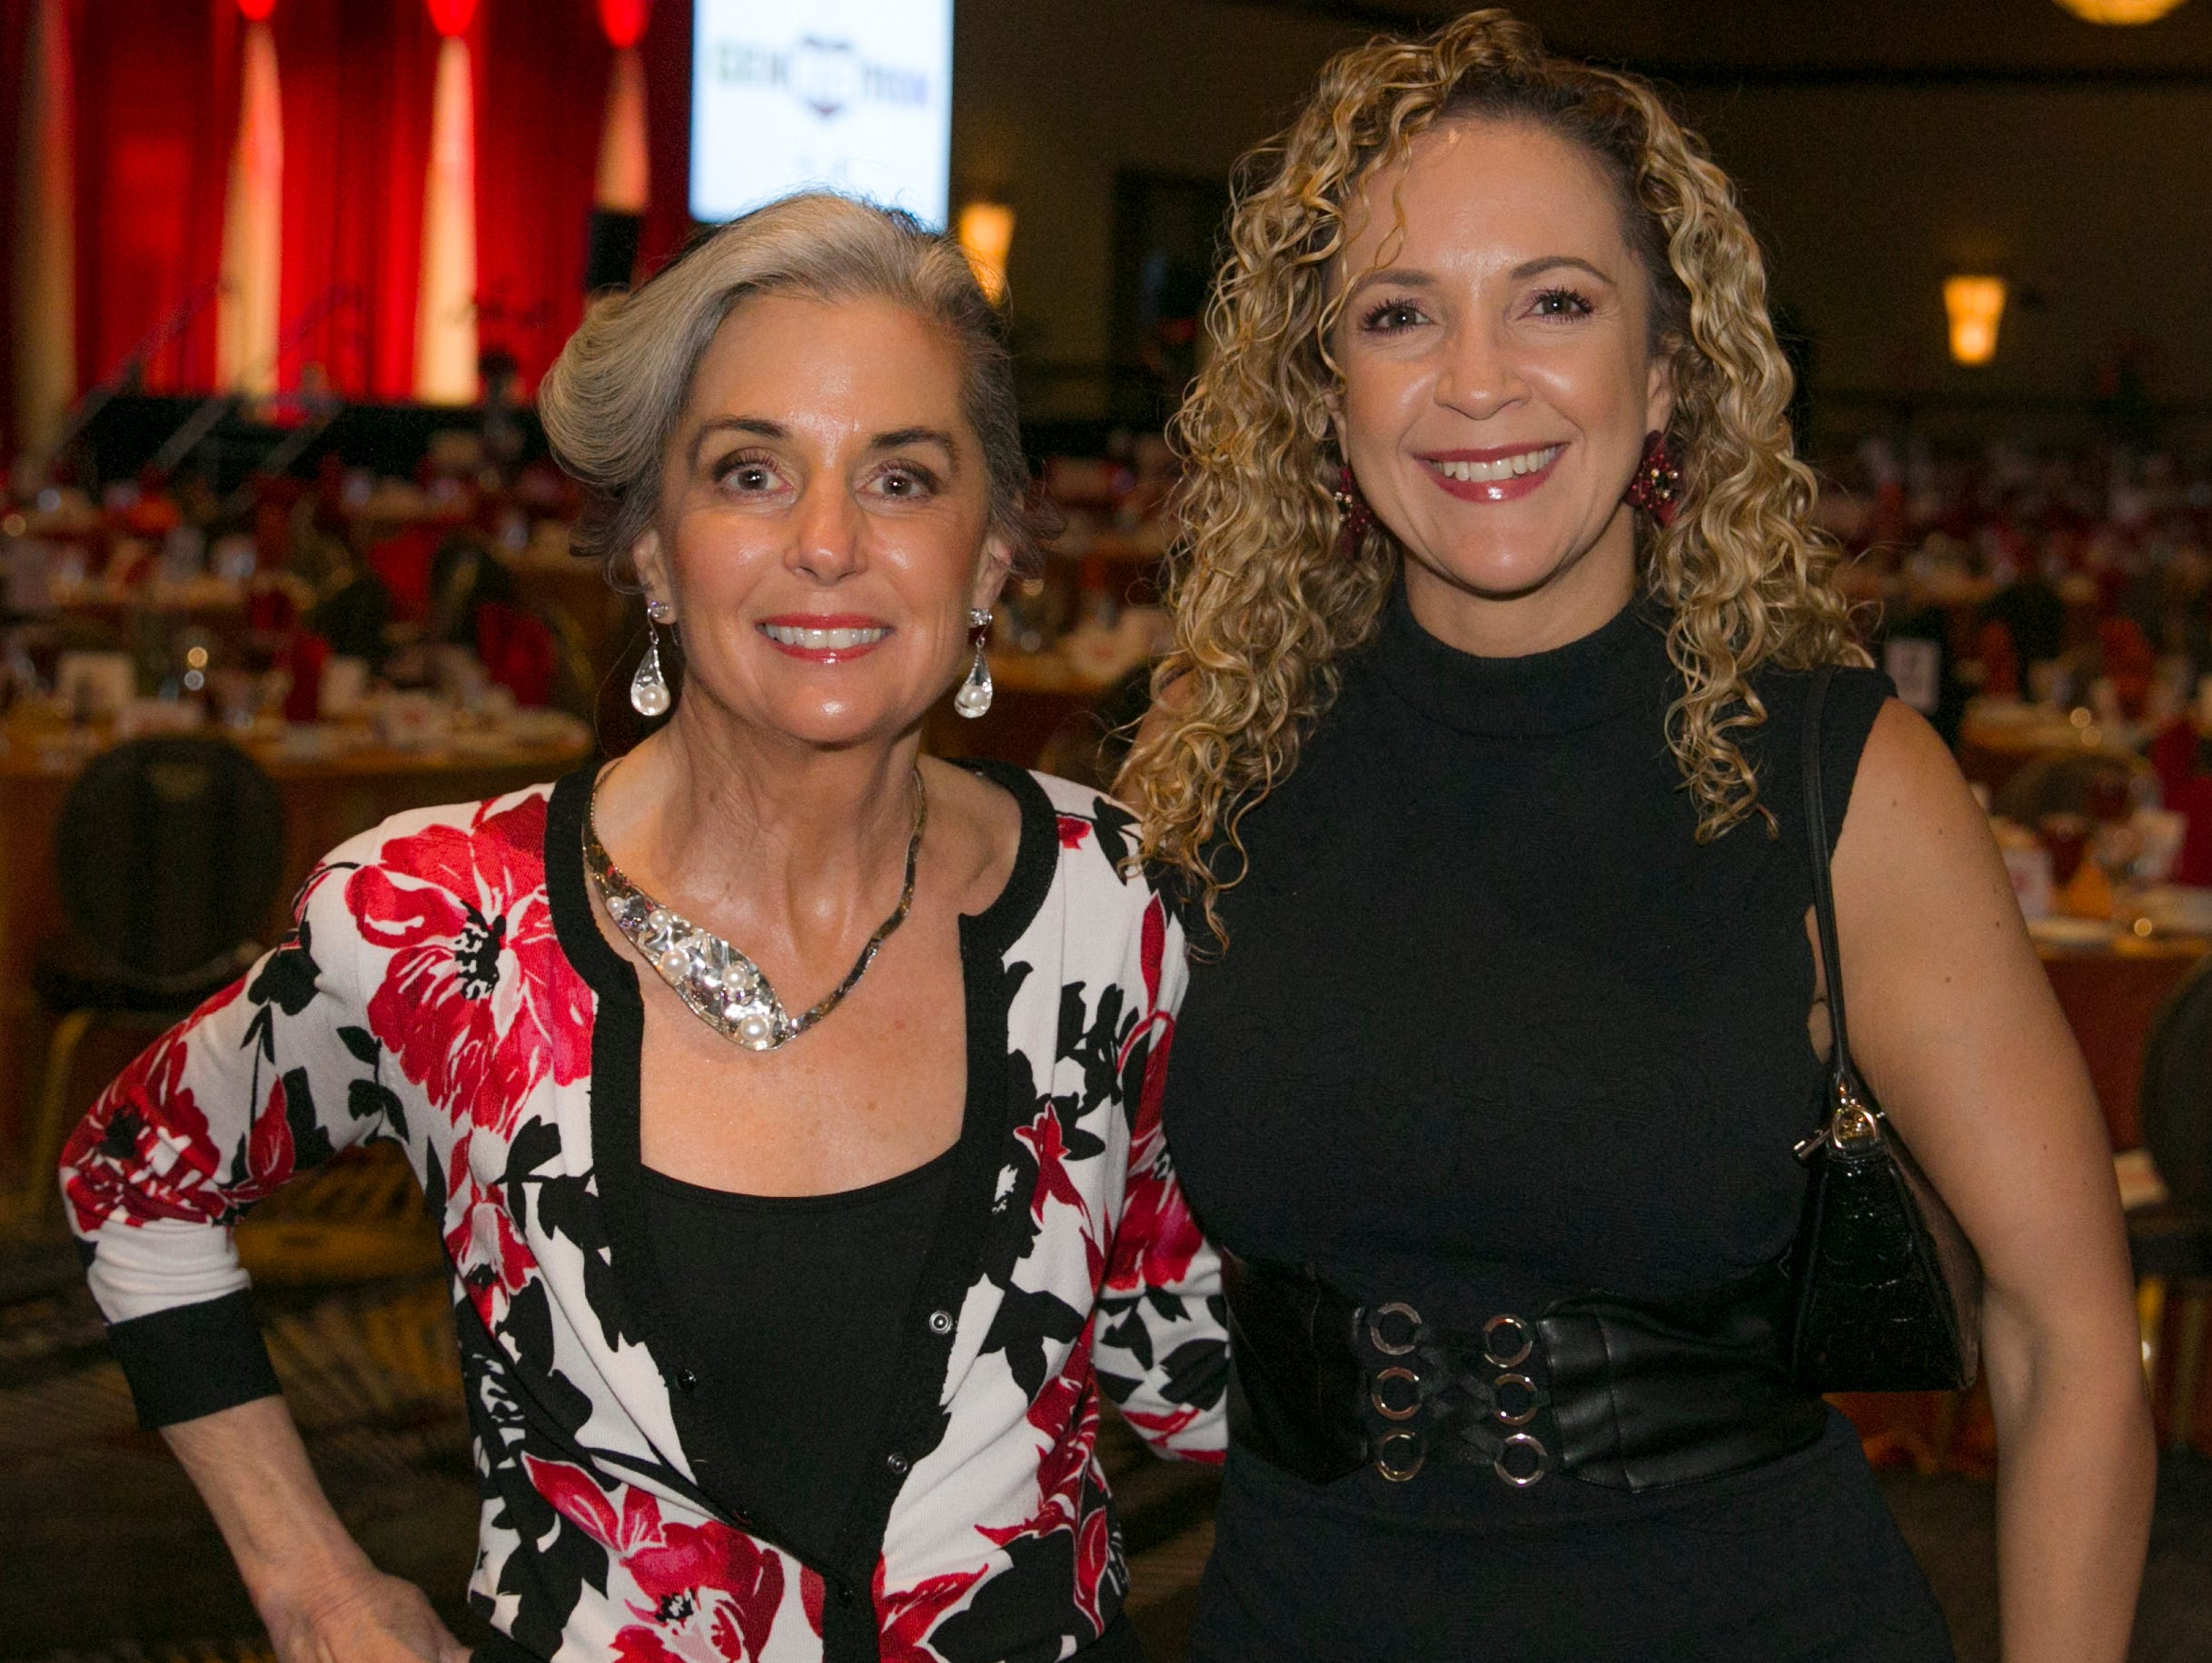 Gail and Diana Sande during the 15th Annual Go Red for Women Luncheon on Friday night,March 1, 2019 held at the downtown Reno Ballroom.